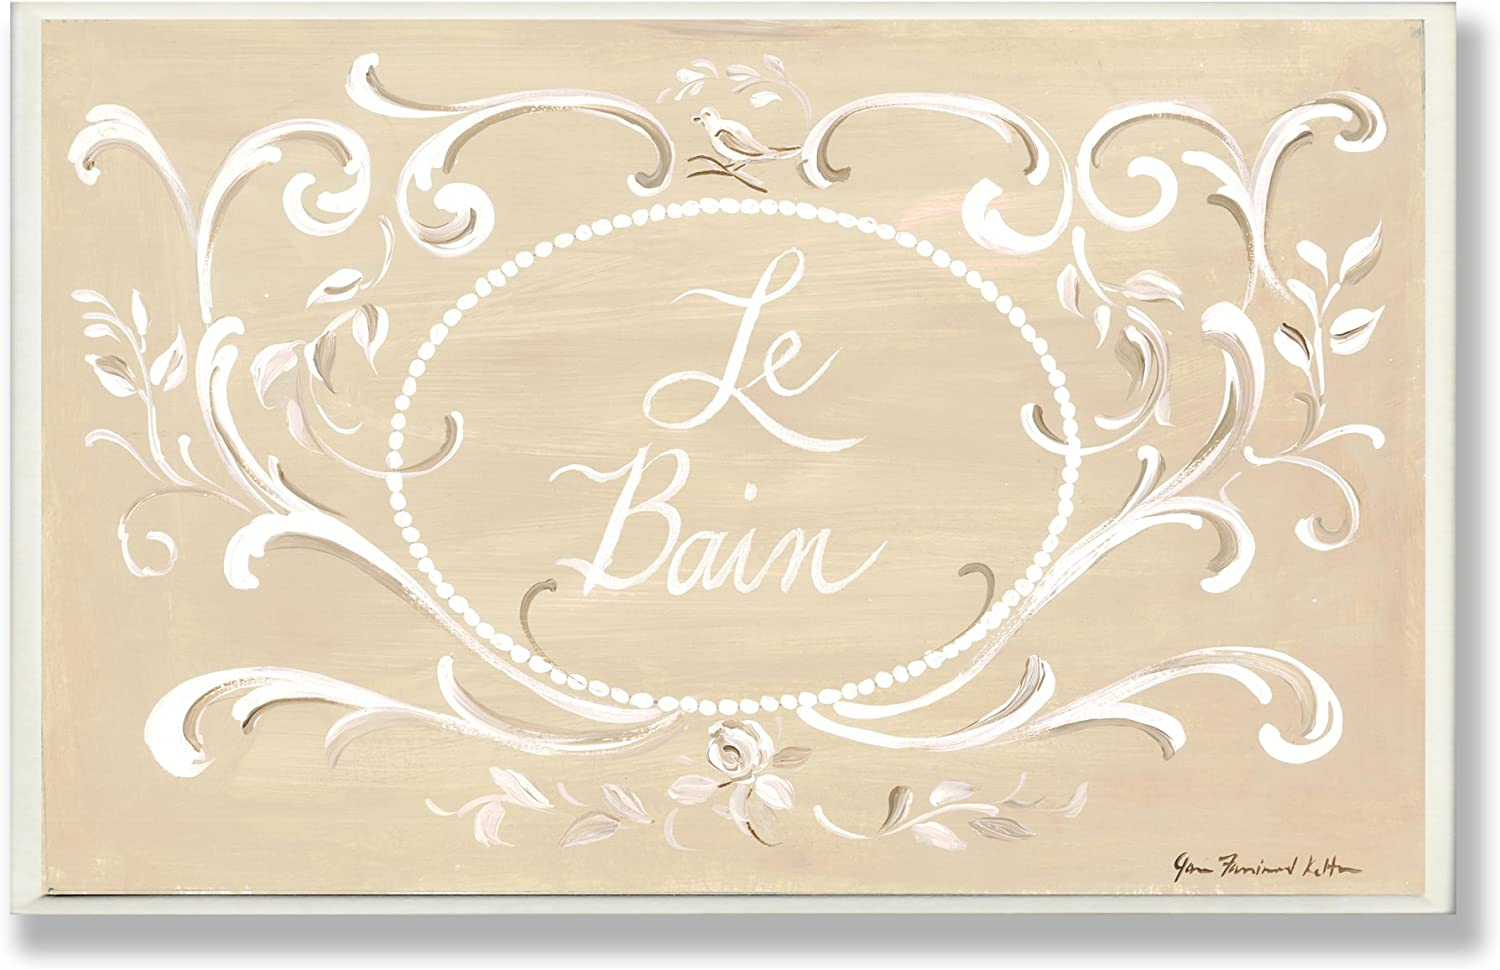 The Stupell Home Decor Collection Tan with White Scroll La Bain Bathroom Wall Plaque